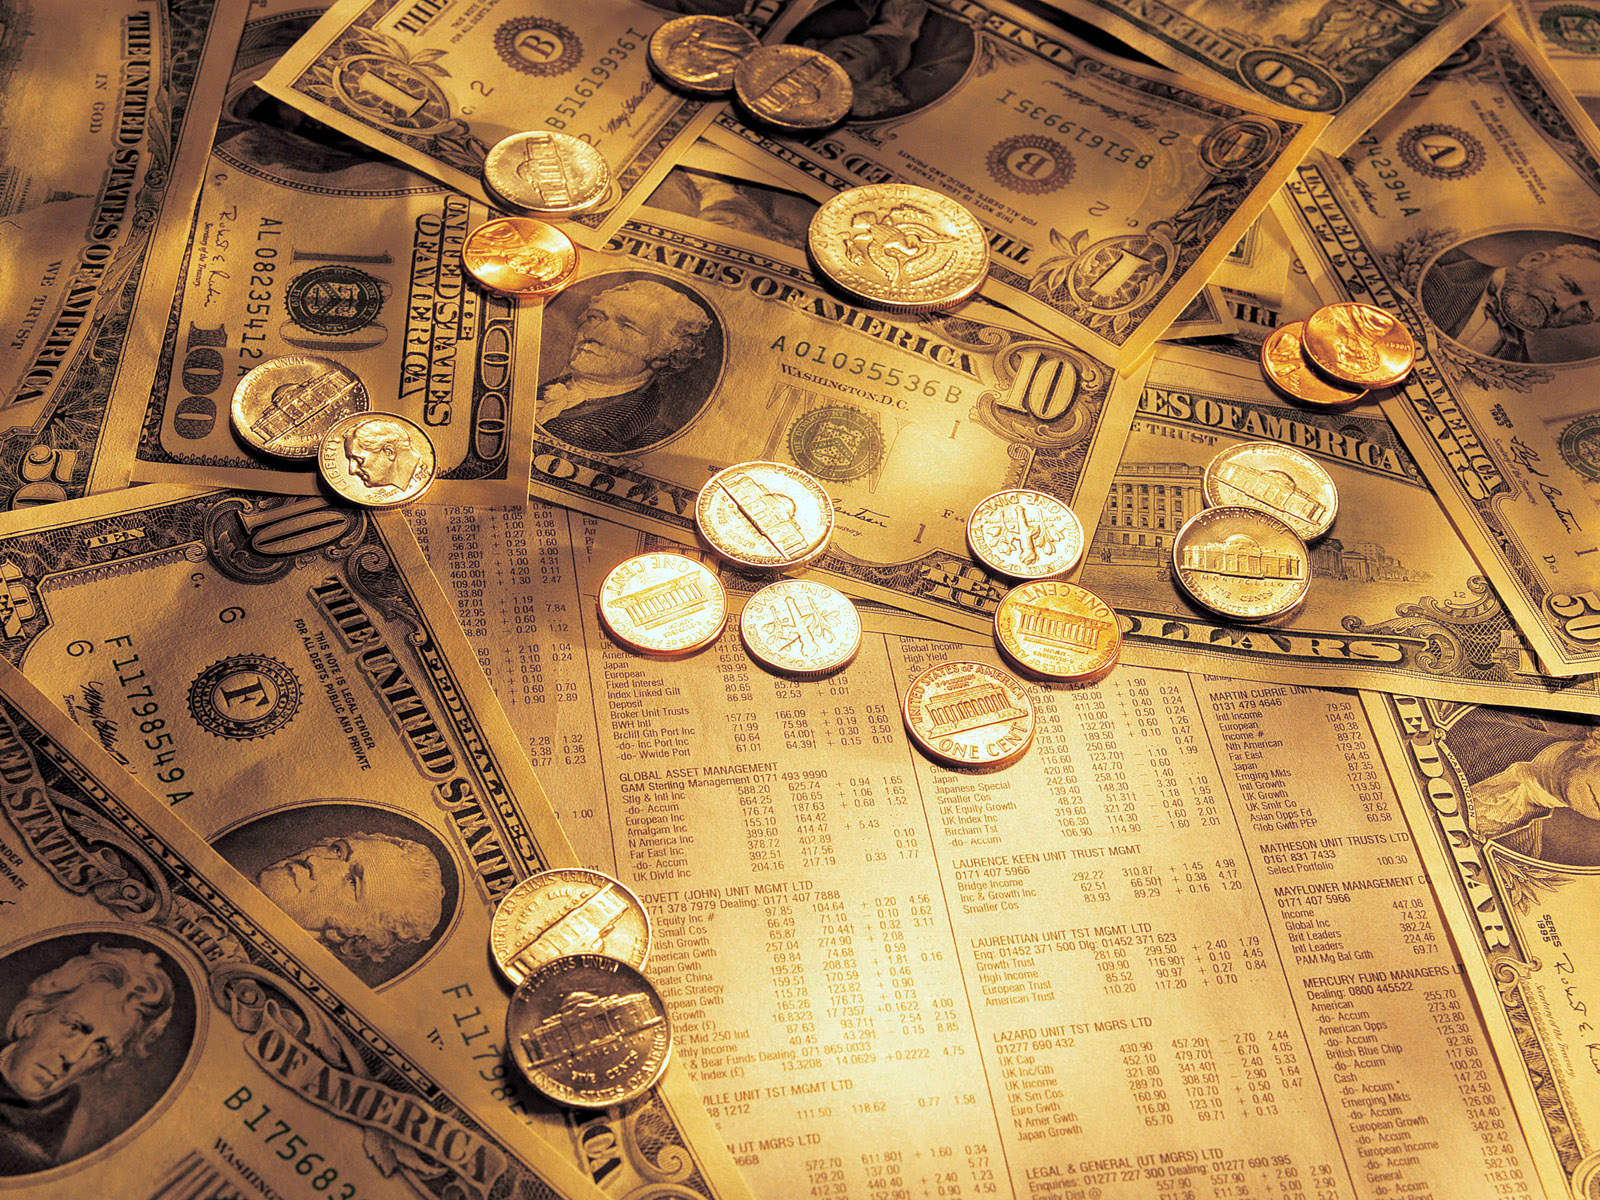 HD cool wallpapers of money 1600x1200